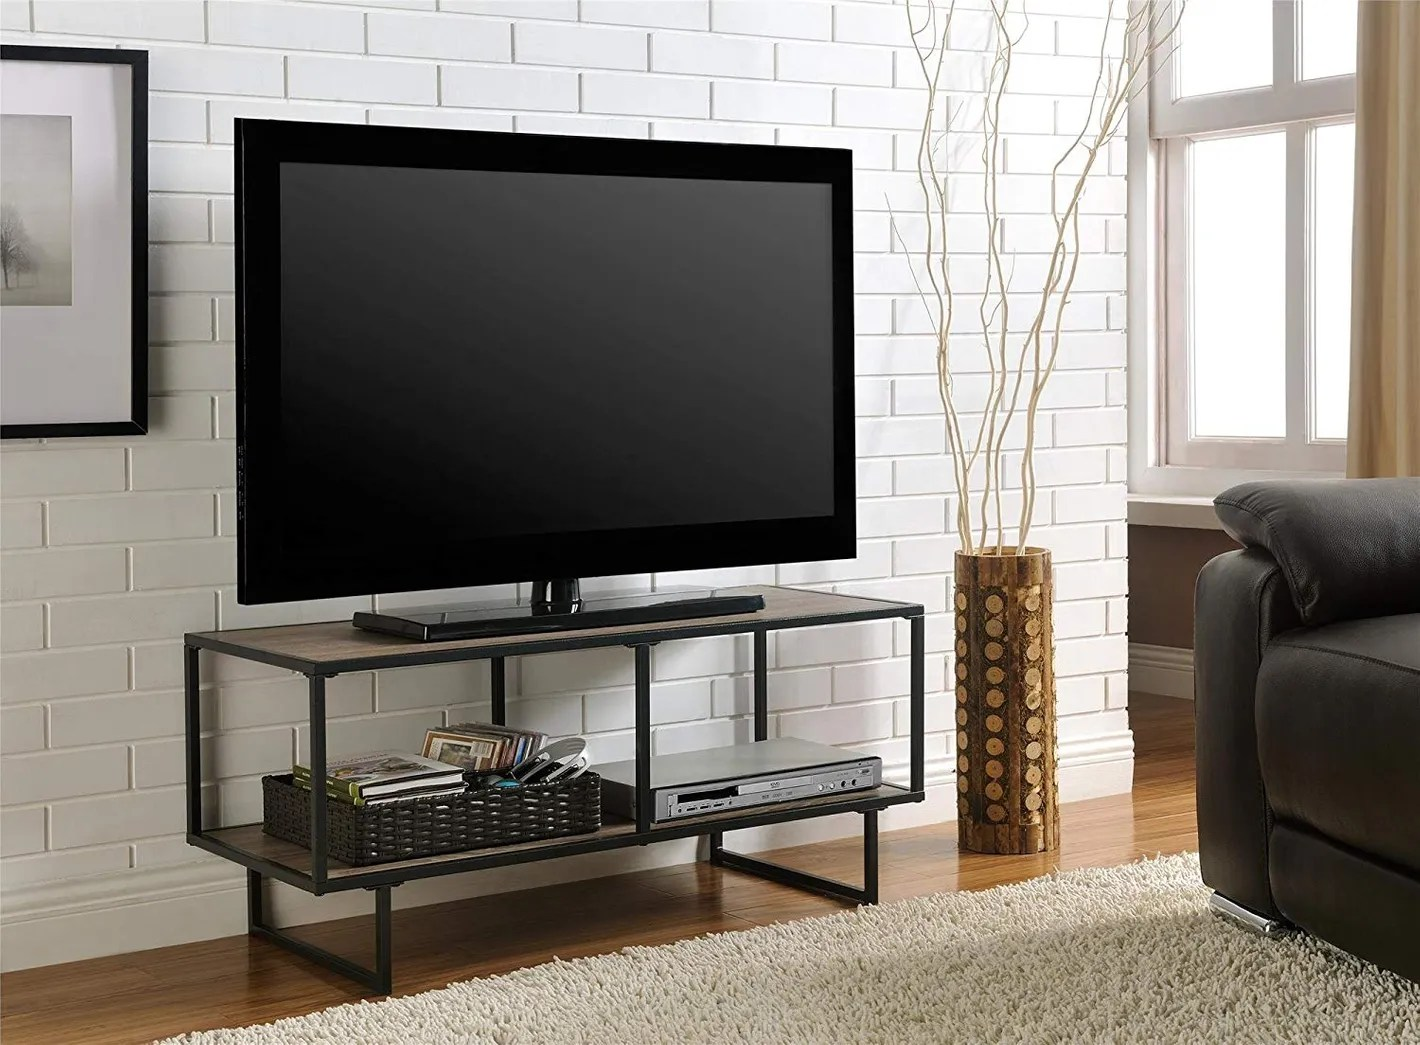 Design Tv Rack Cool Tv Rack With Tv Rack With Design Tv Rack 11 Best Tv Stands And Consoles 2019